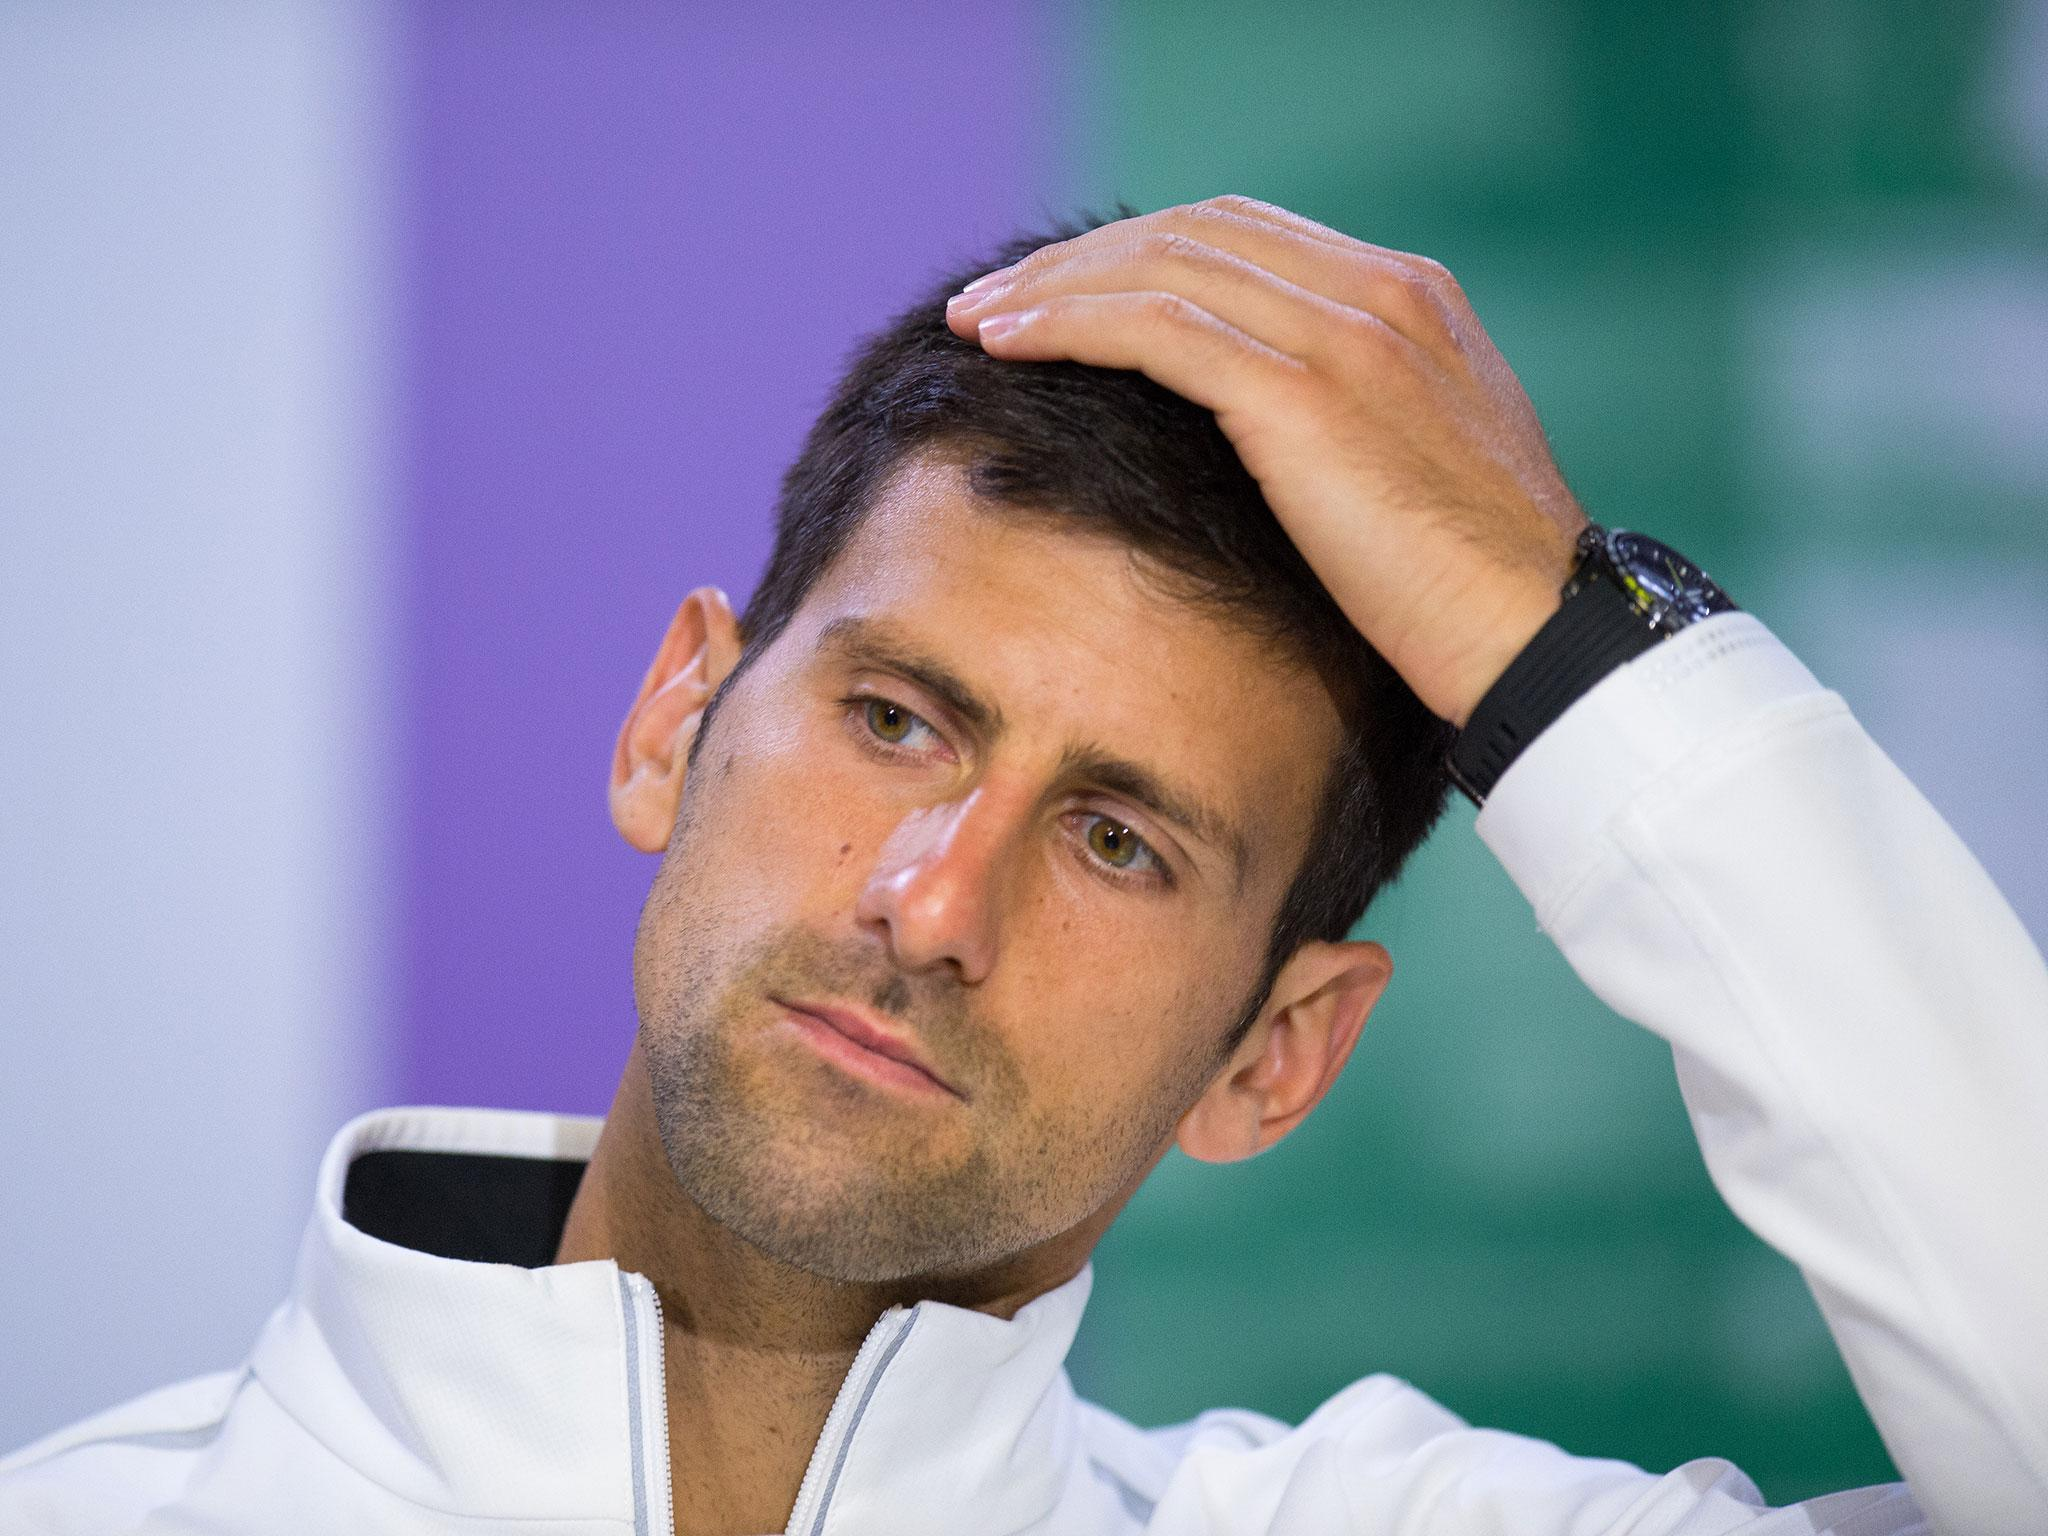 Novak Djokovic confirms he will not play again in 2017 following